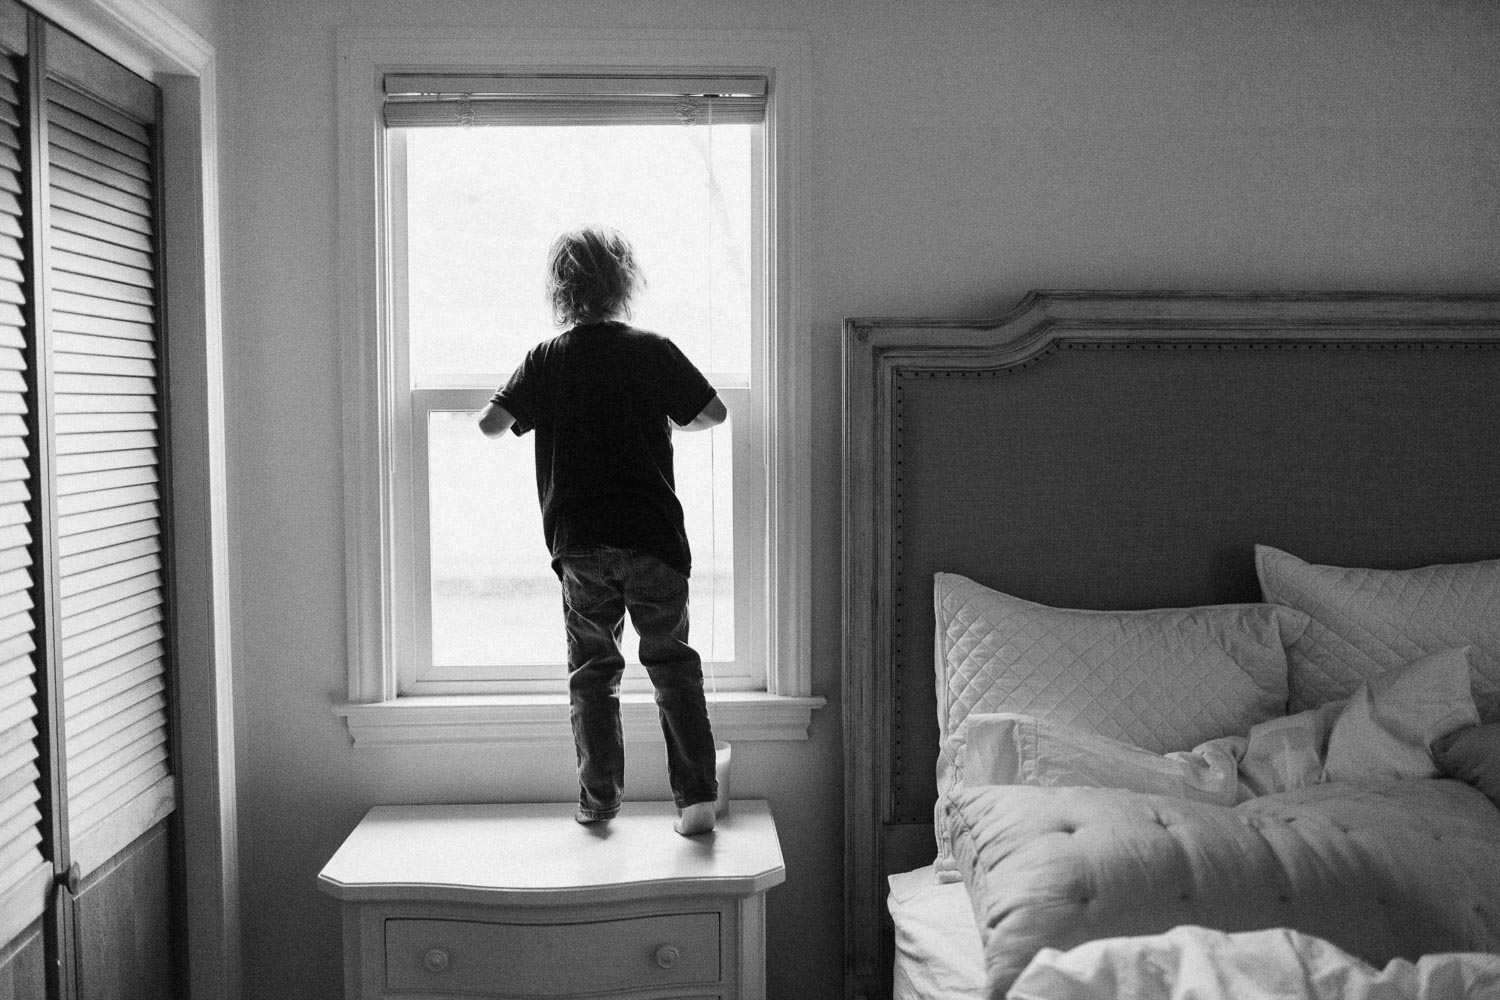 candid-black-and-white-photo-boy-looking-out-window-slc-utah